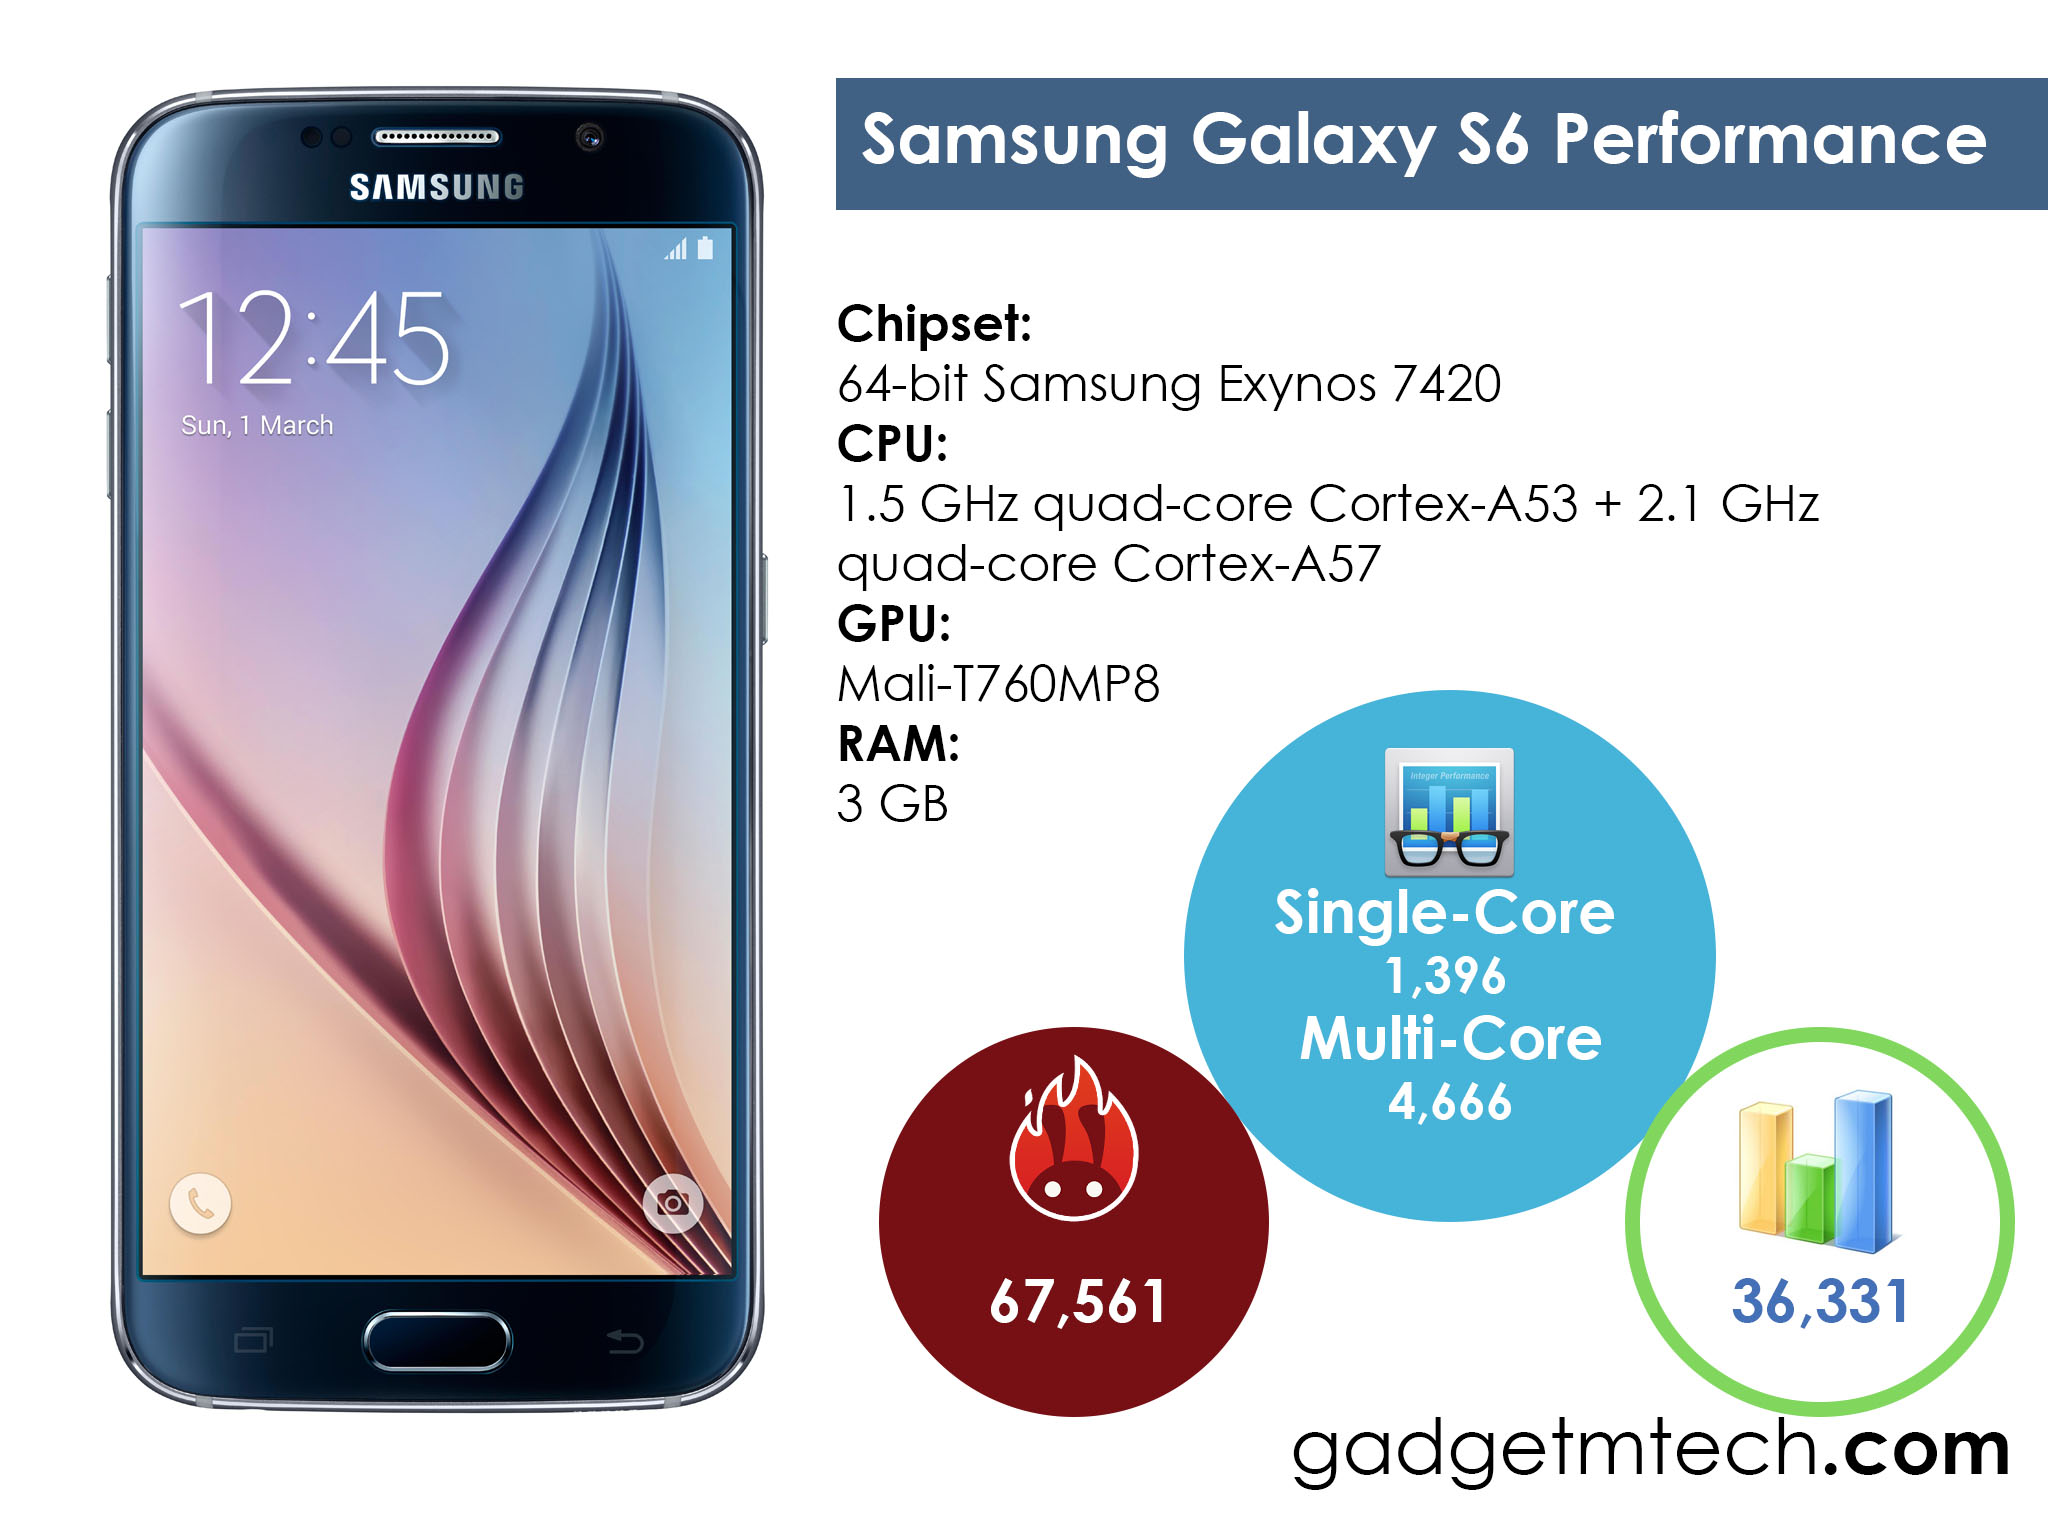 Samsung Galaxy S6 Performance